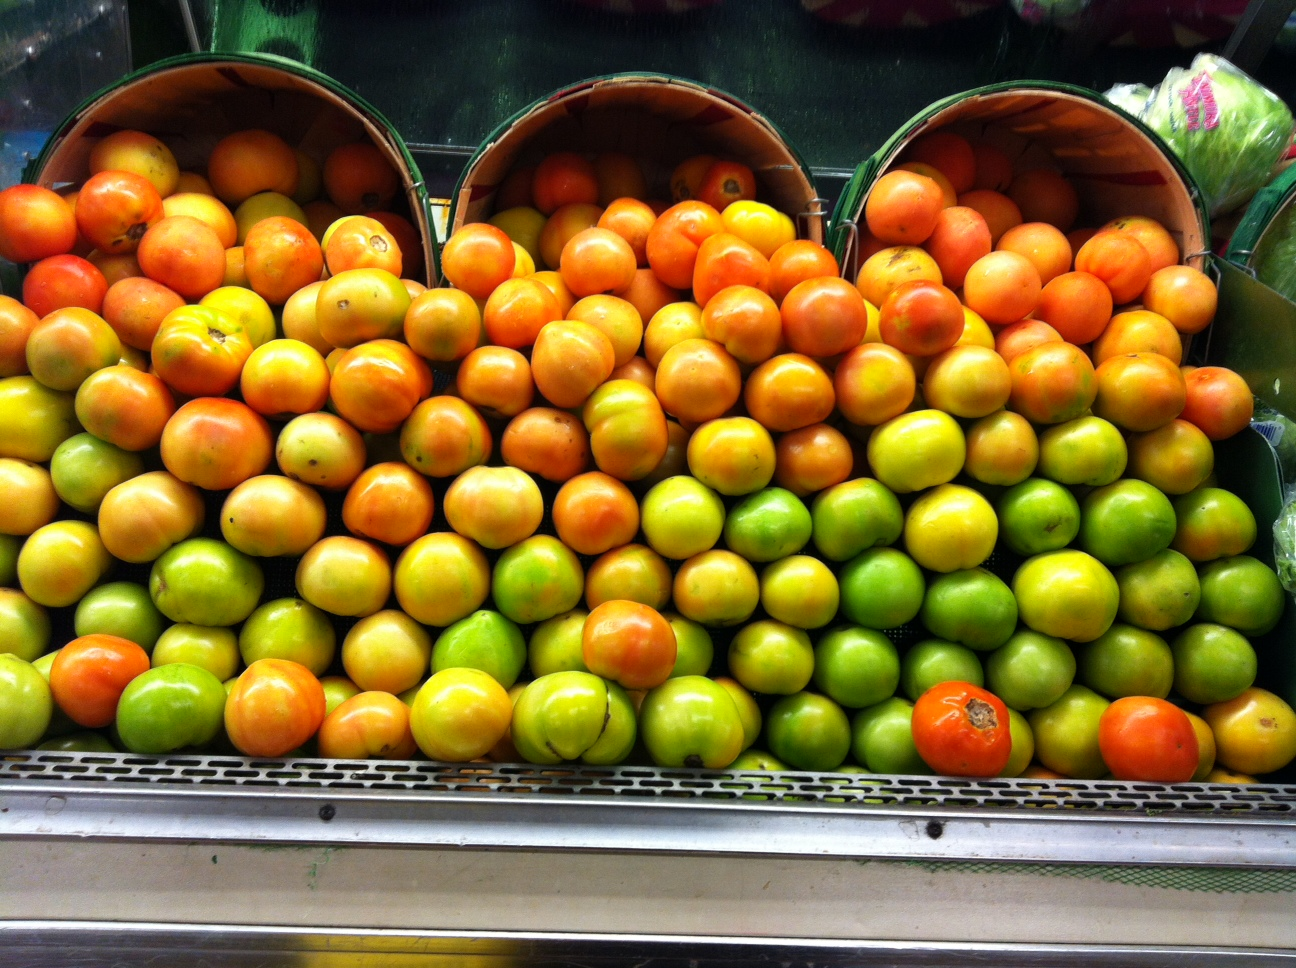 How Much Food Do Grocery Stores Throw Away